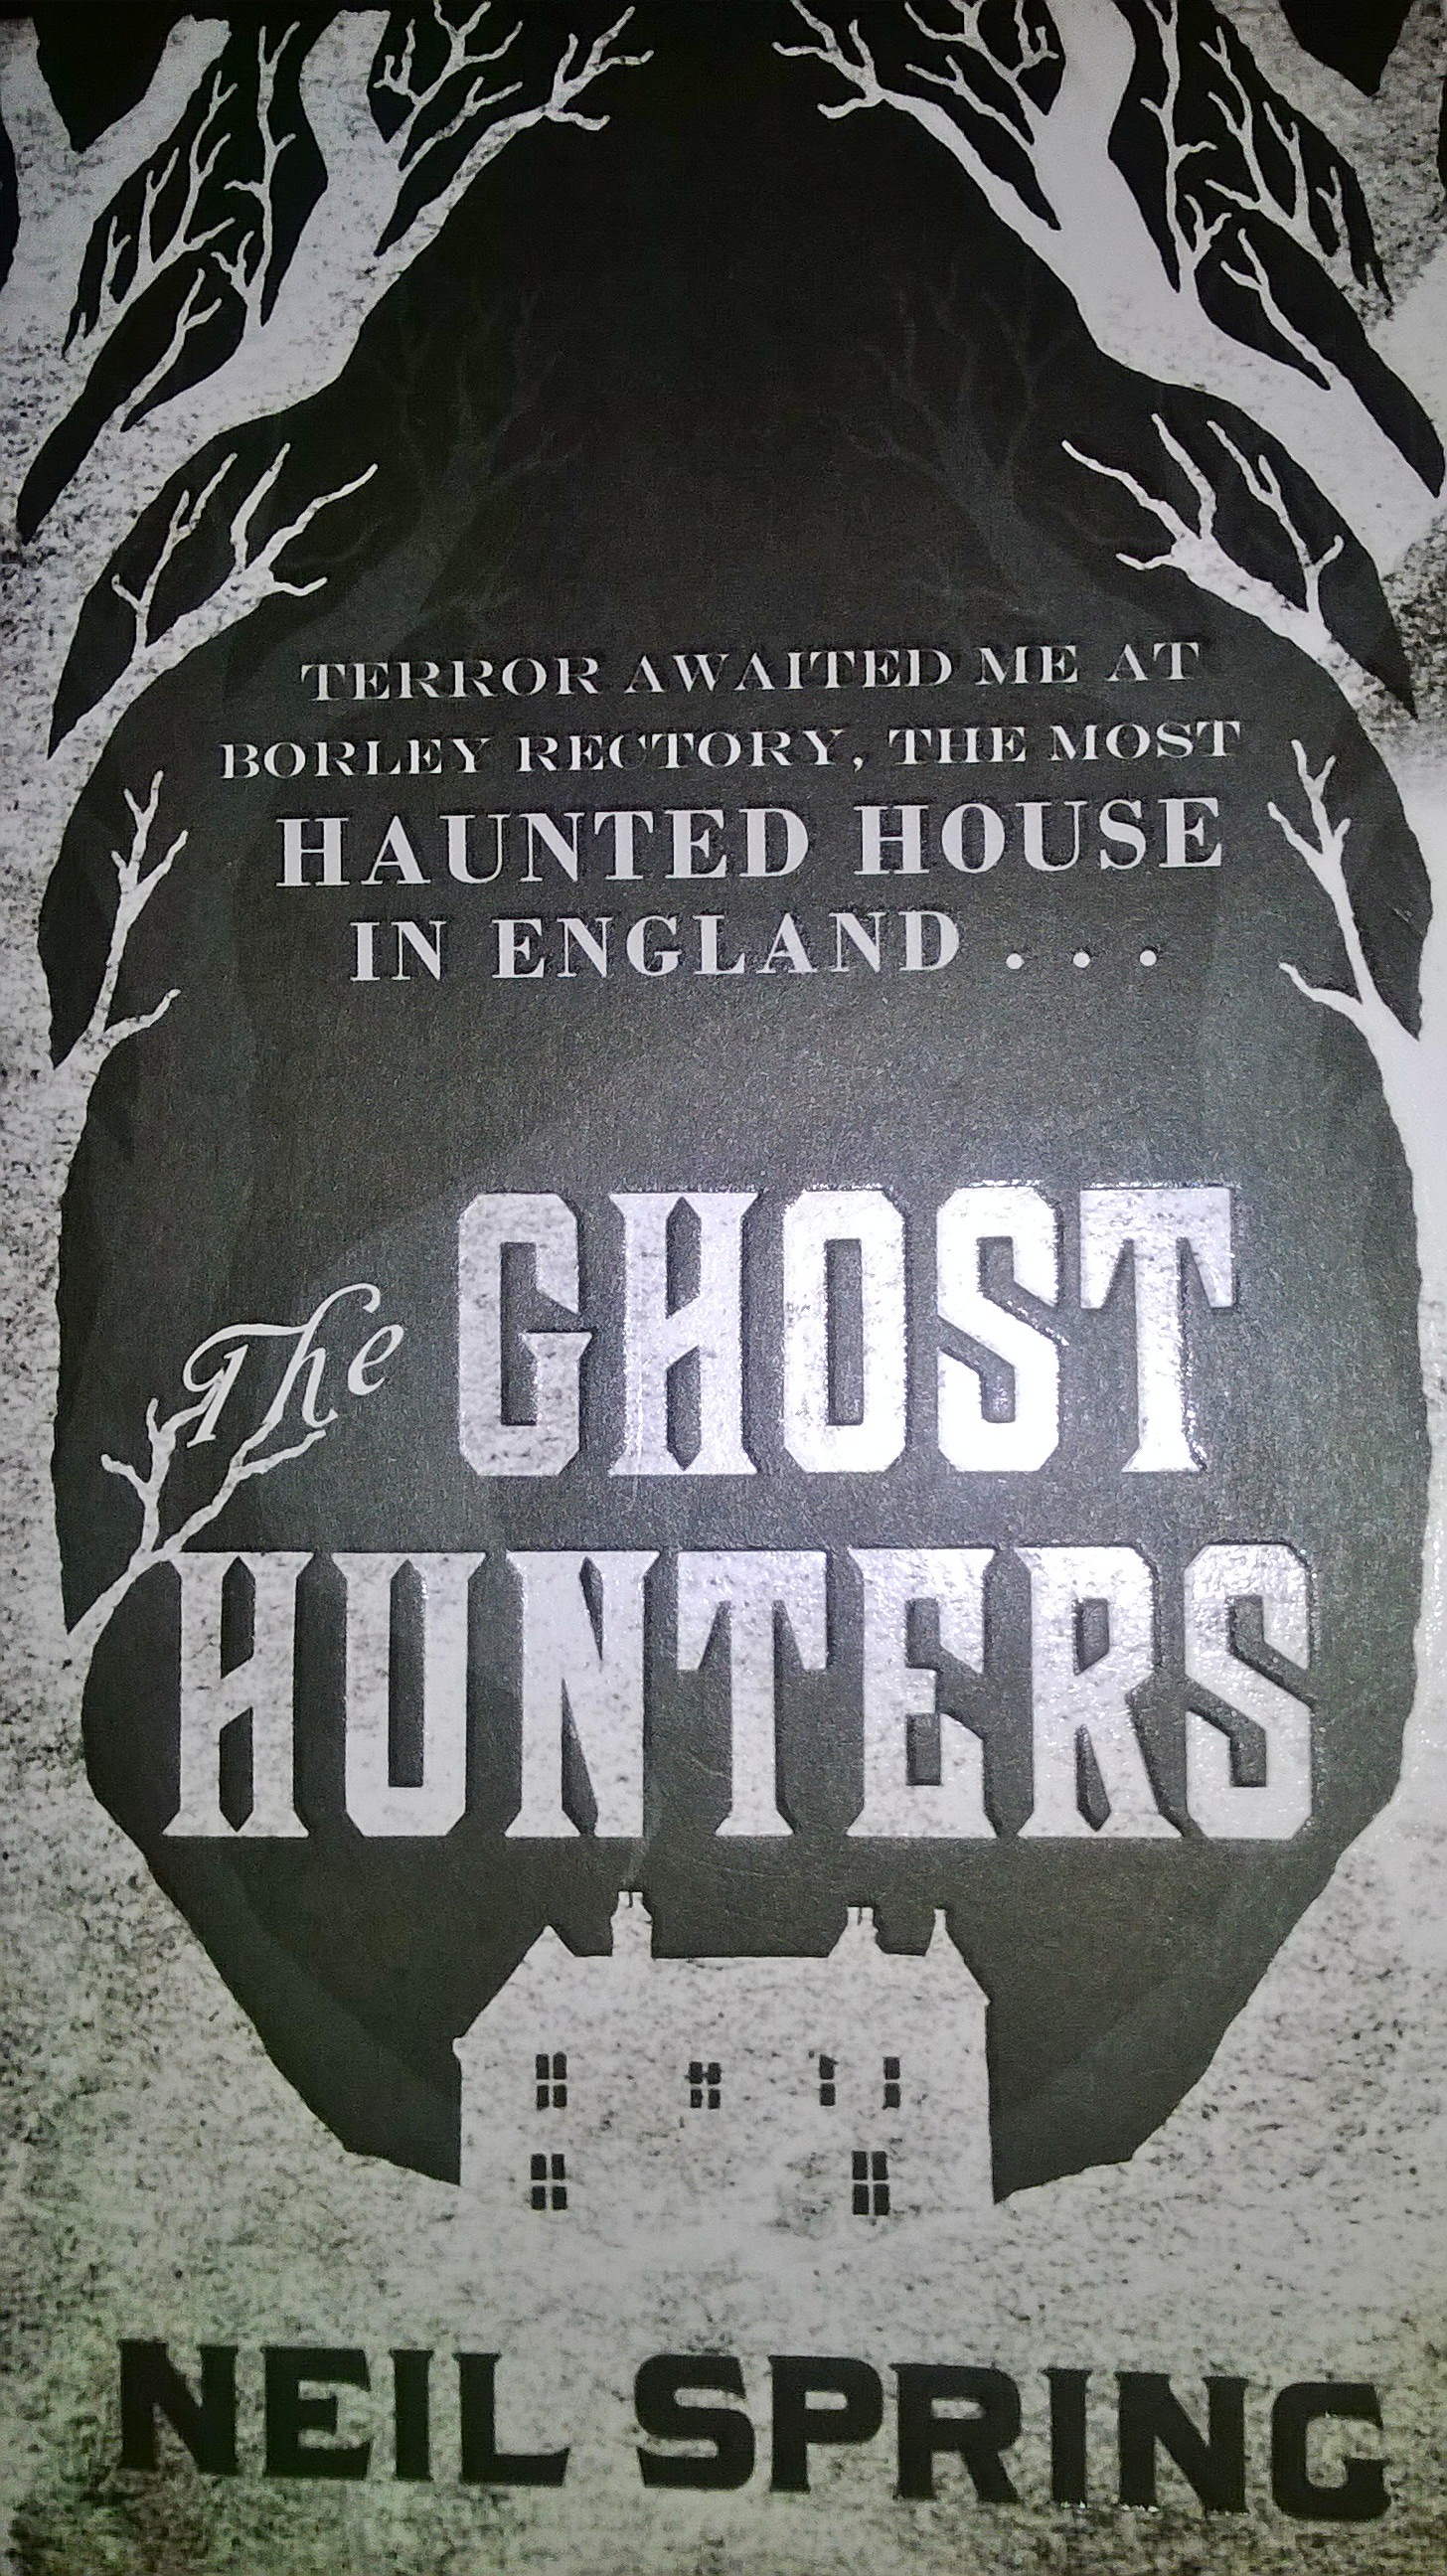 The Ghost Hunters by Neil Spring Book Review | Caliburnus Rises